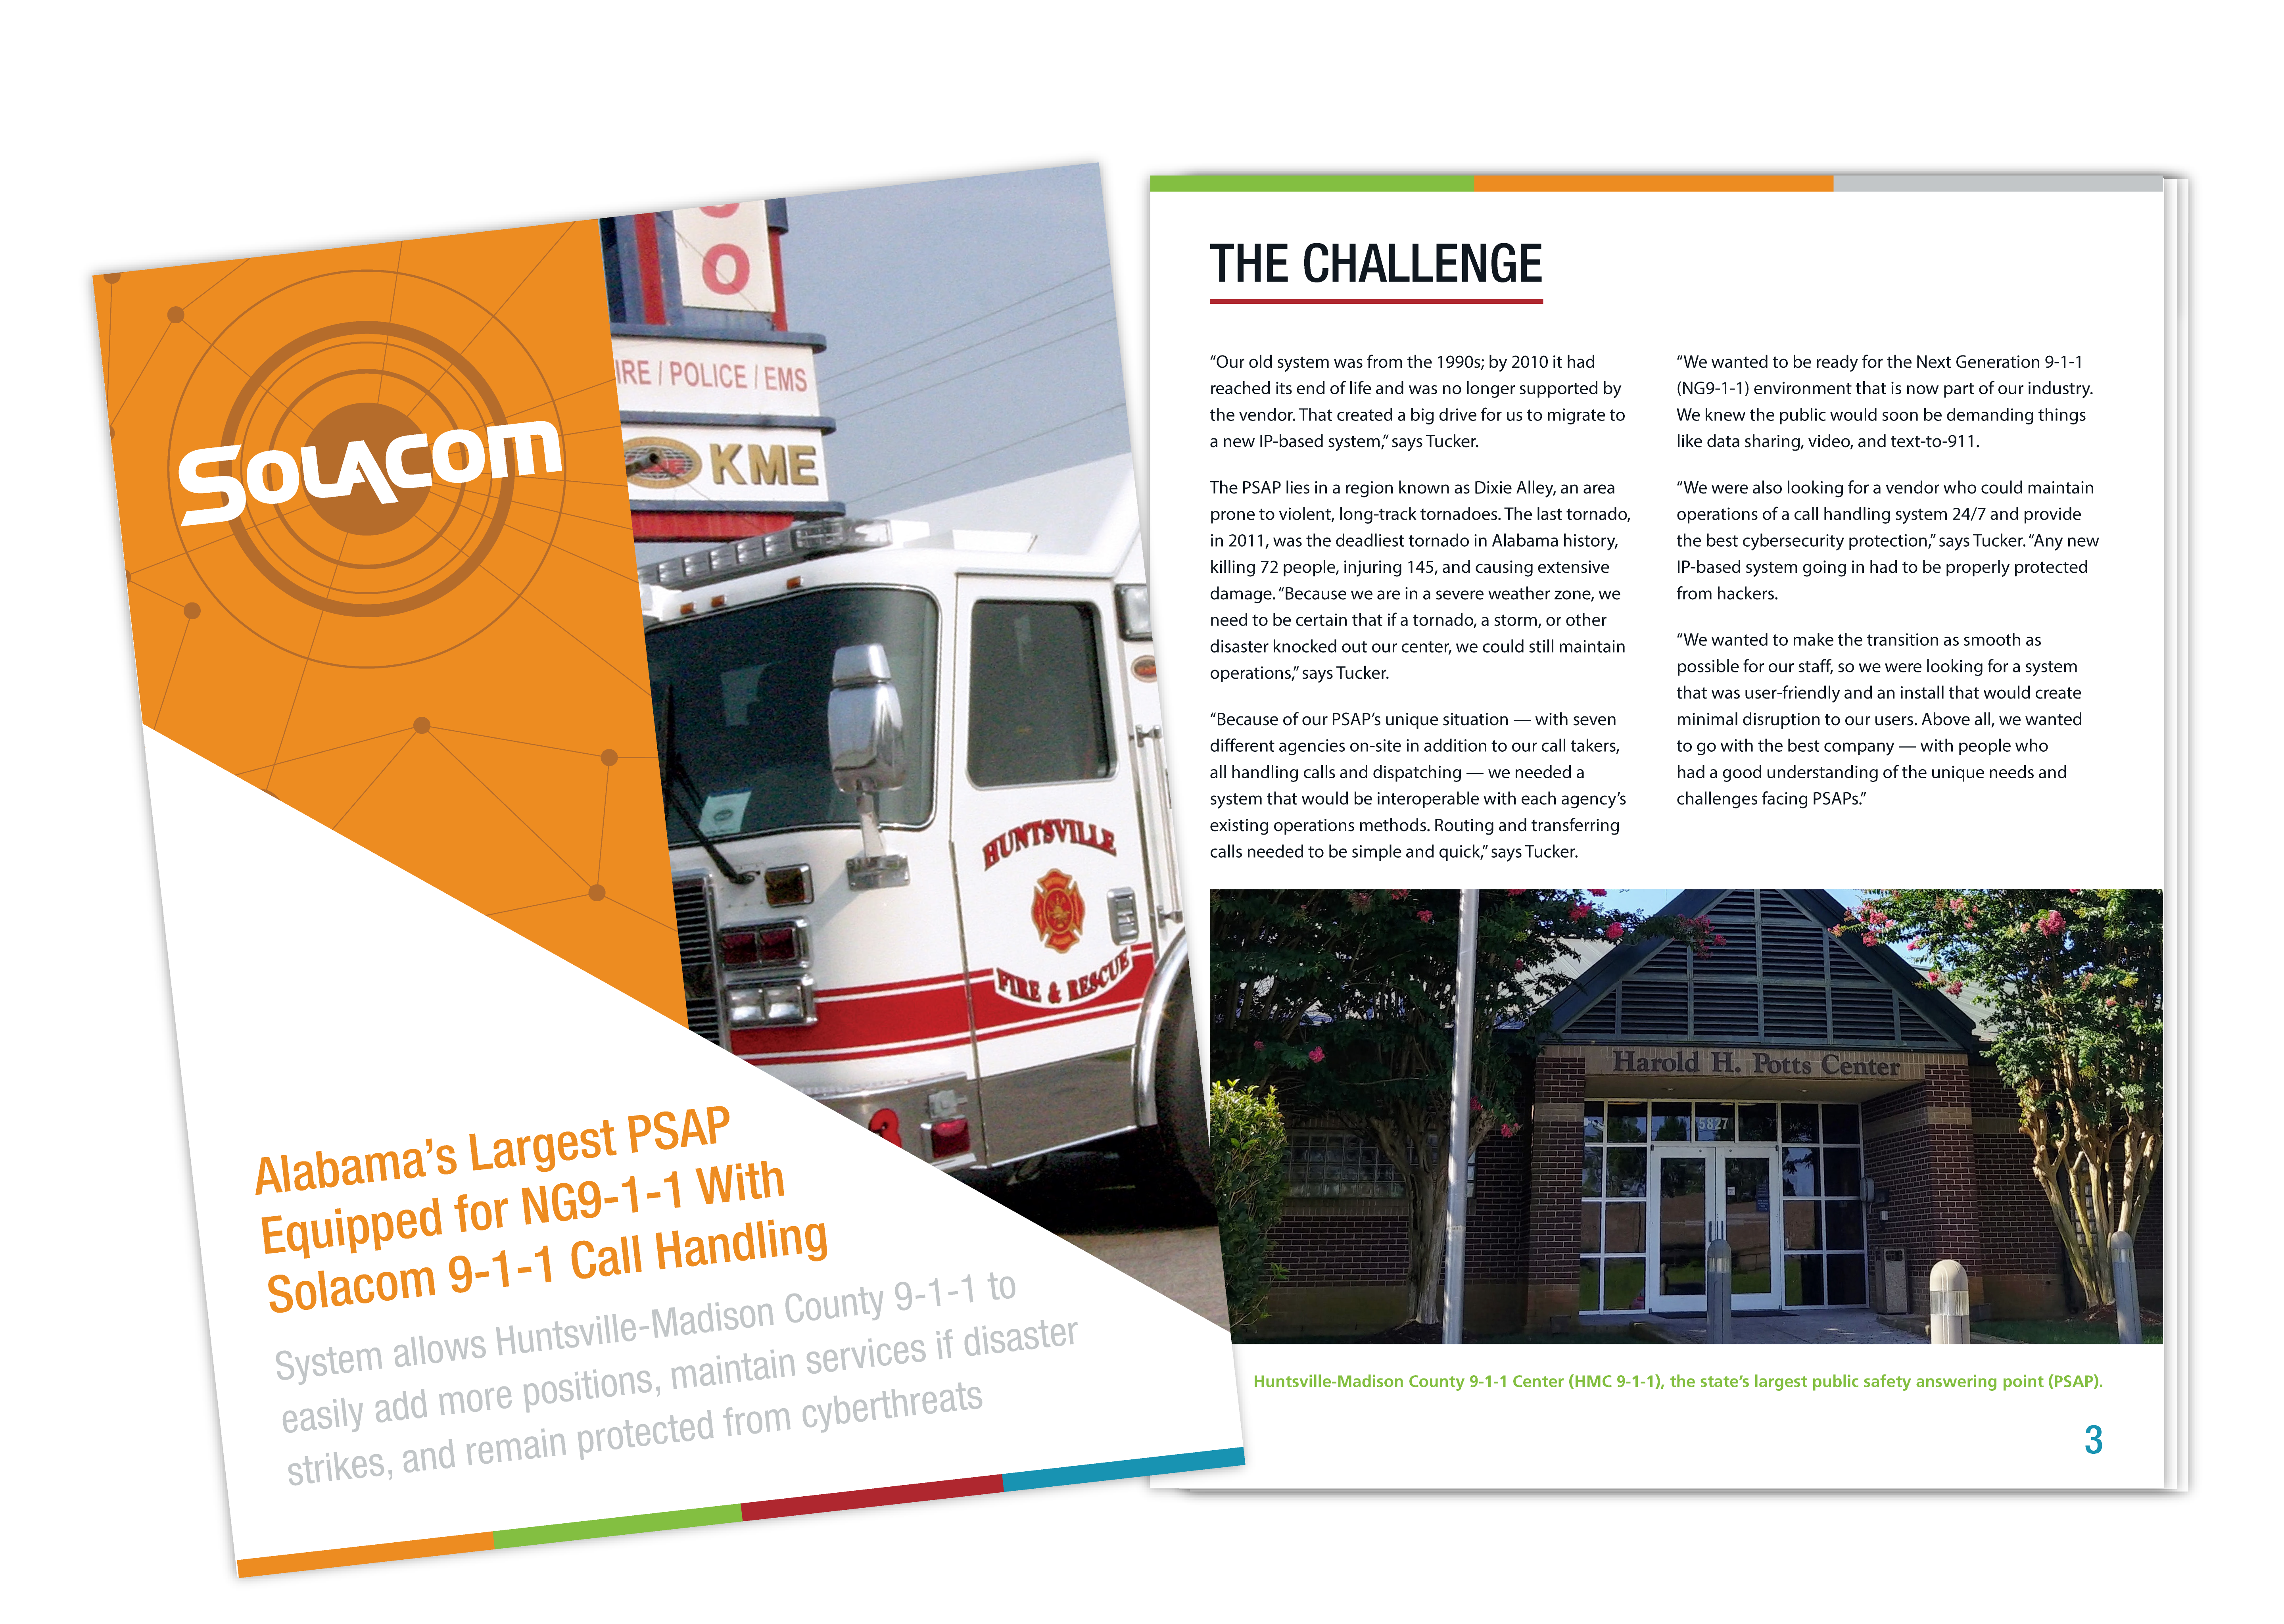 Alabama's Largest PSAP Equipped for NG9-1-1 With Solacom 9-1-1 Call Handling, a Solacom case study